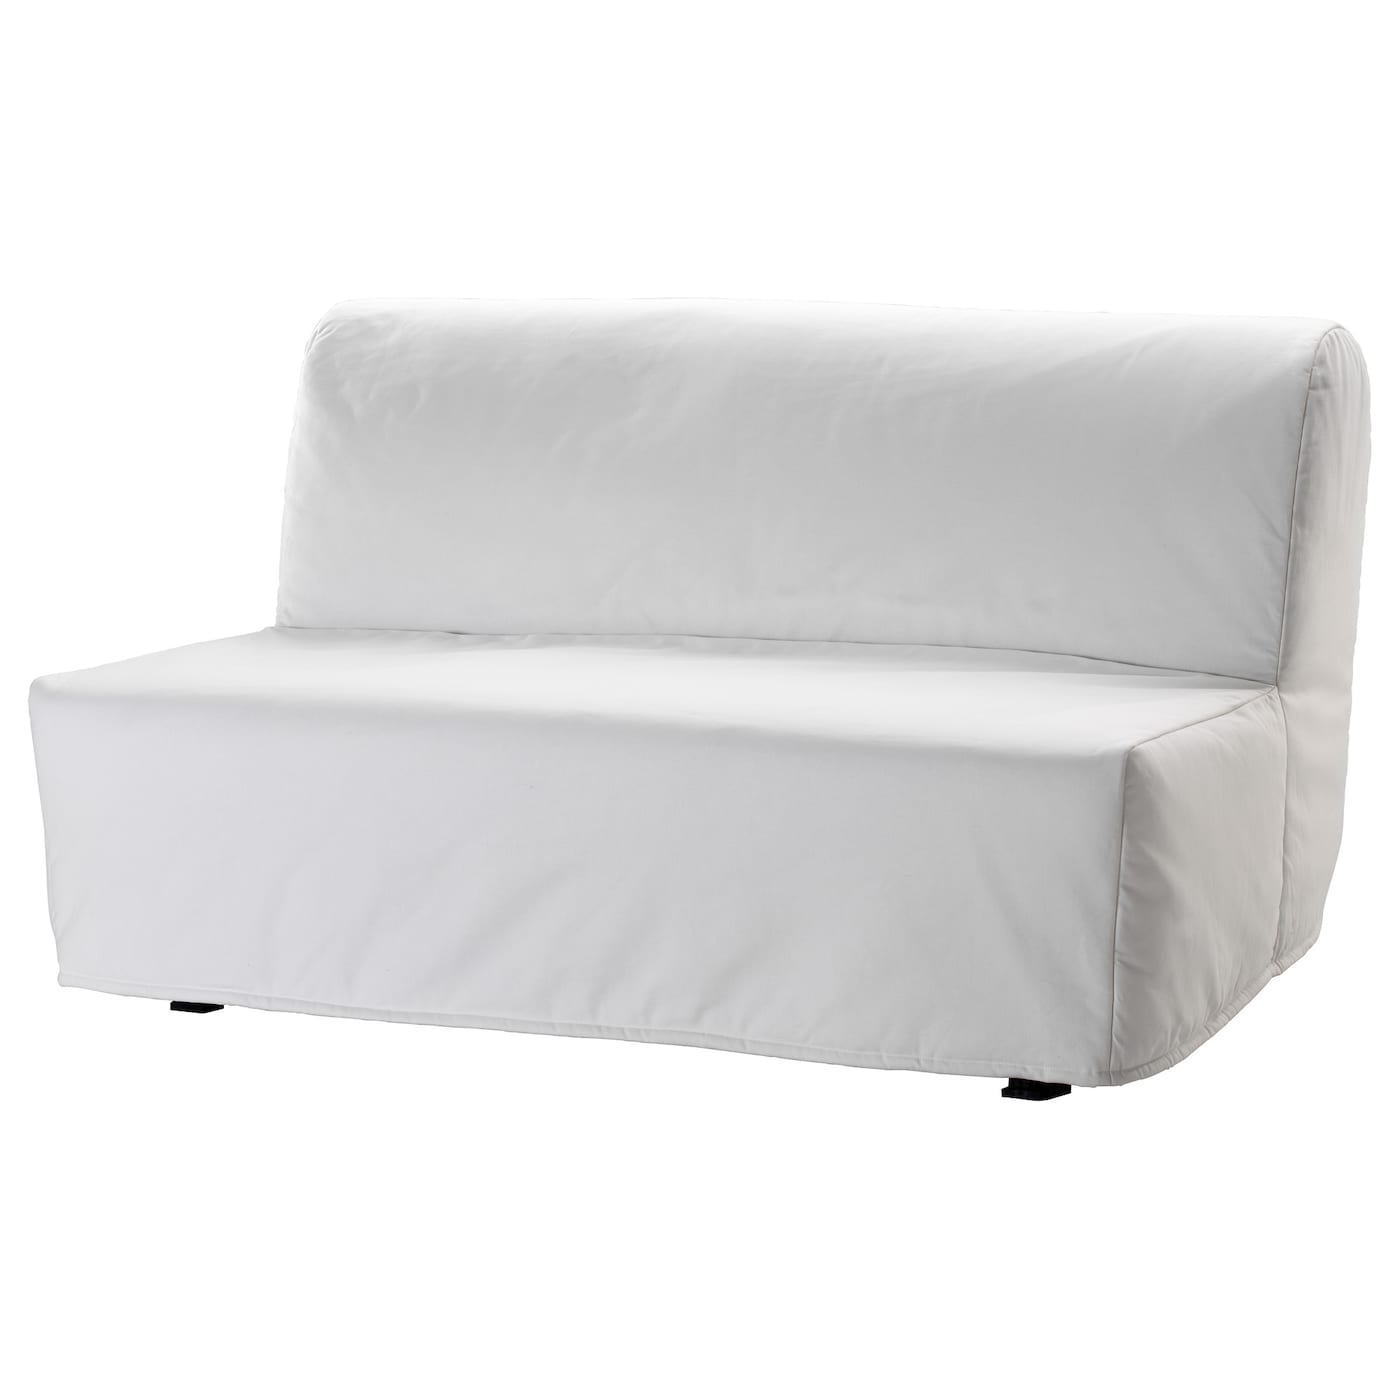 Lycksele h vet two seat sofa bed ransta white ikea Ikea divan beds